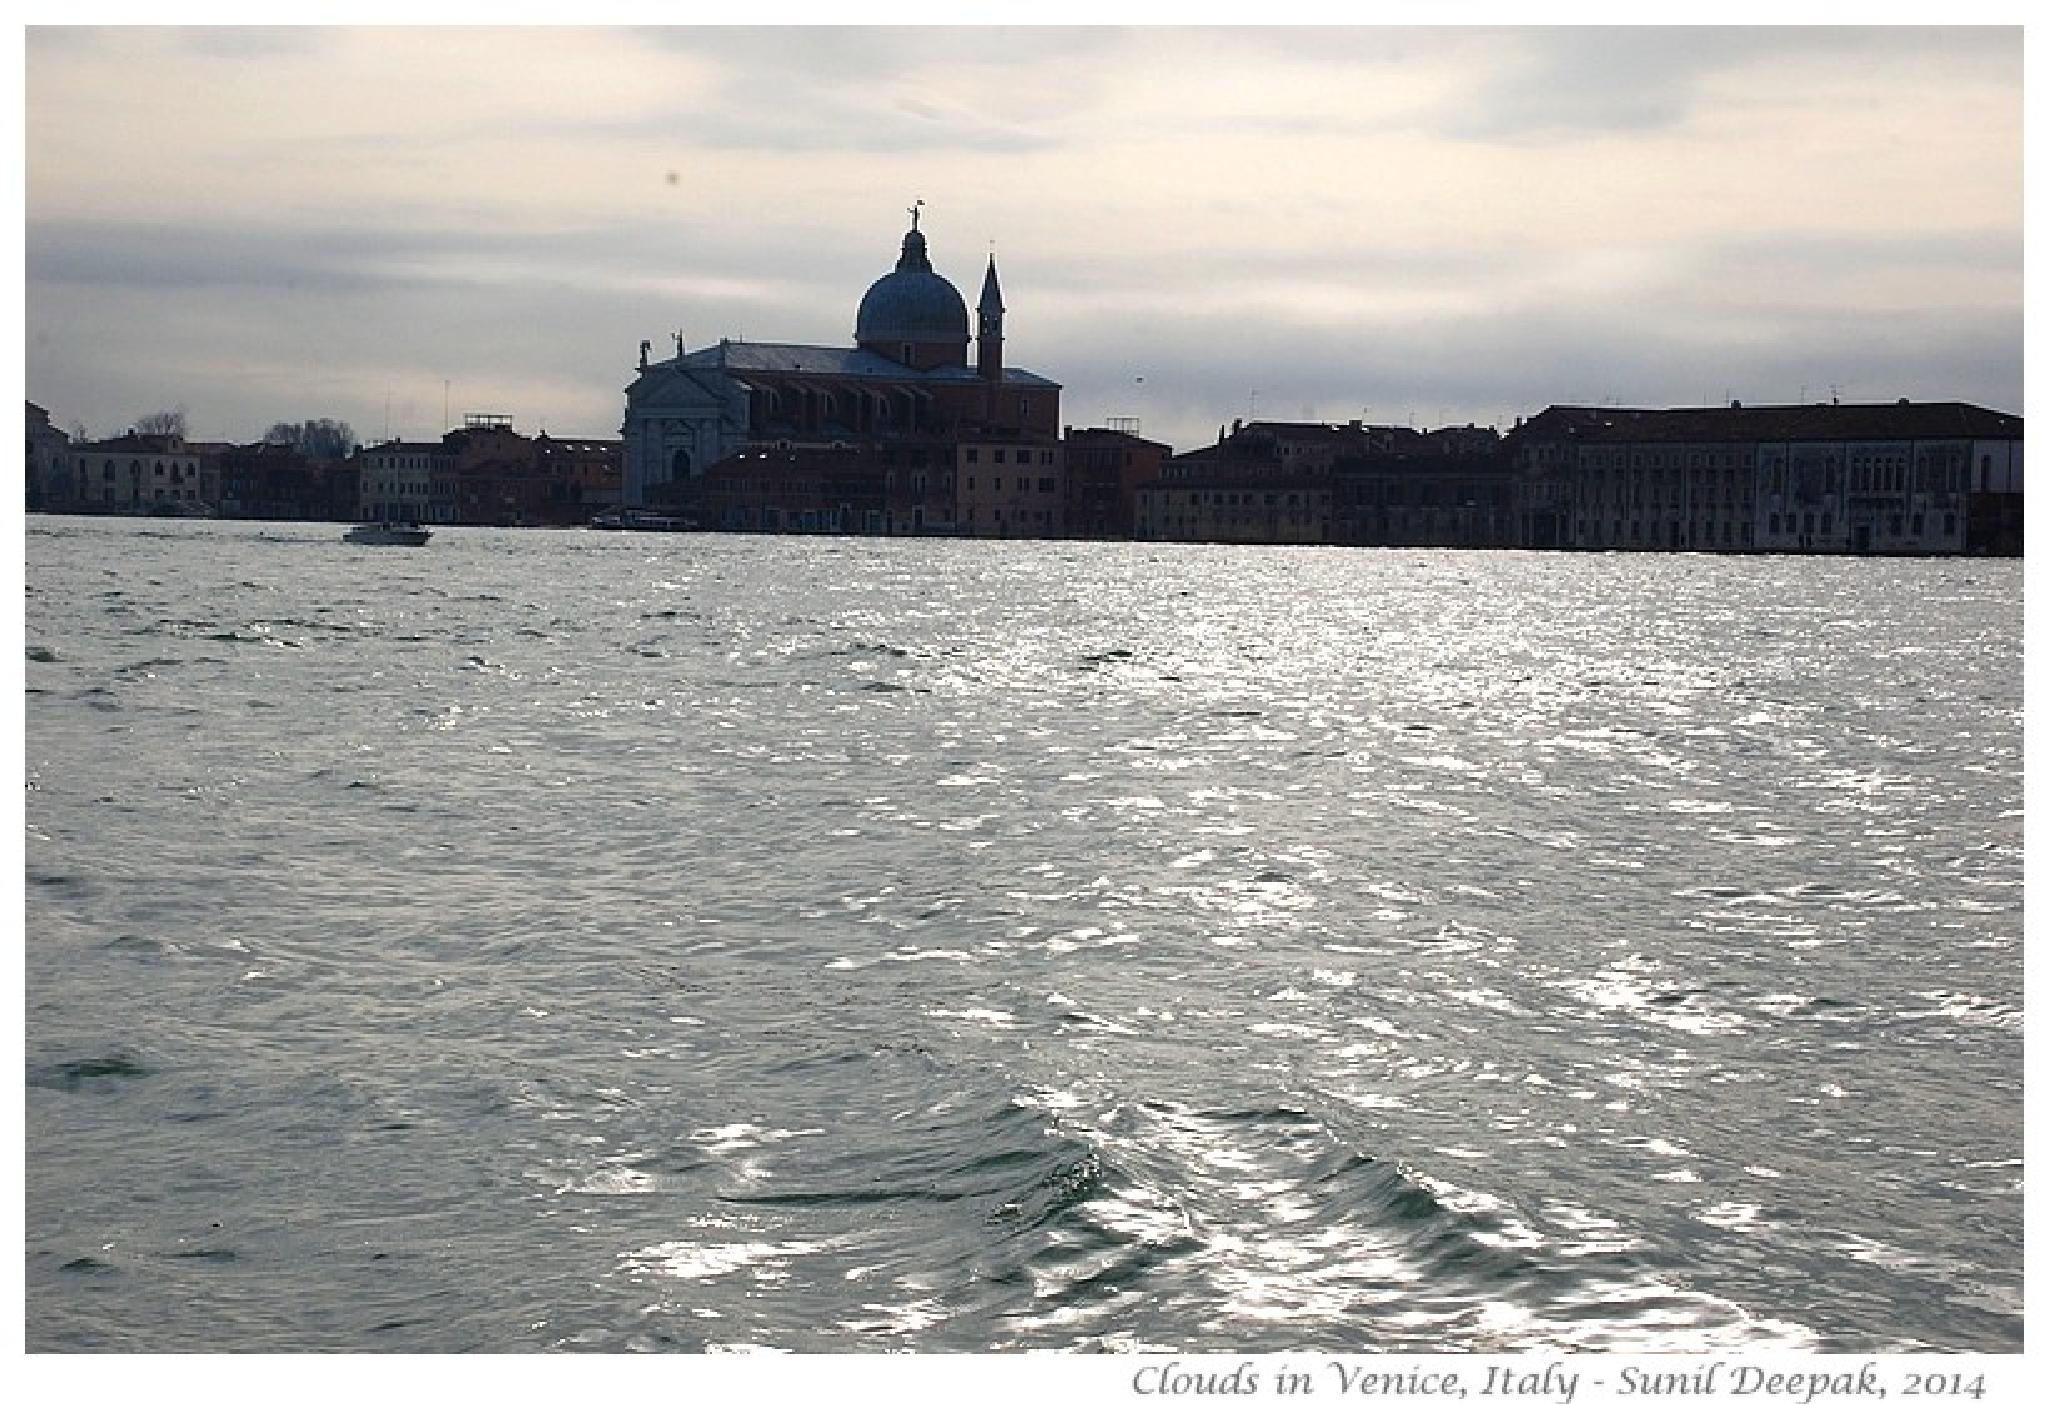 A cloudy morning in Venice by Dr Sunil Deepak